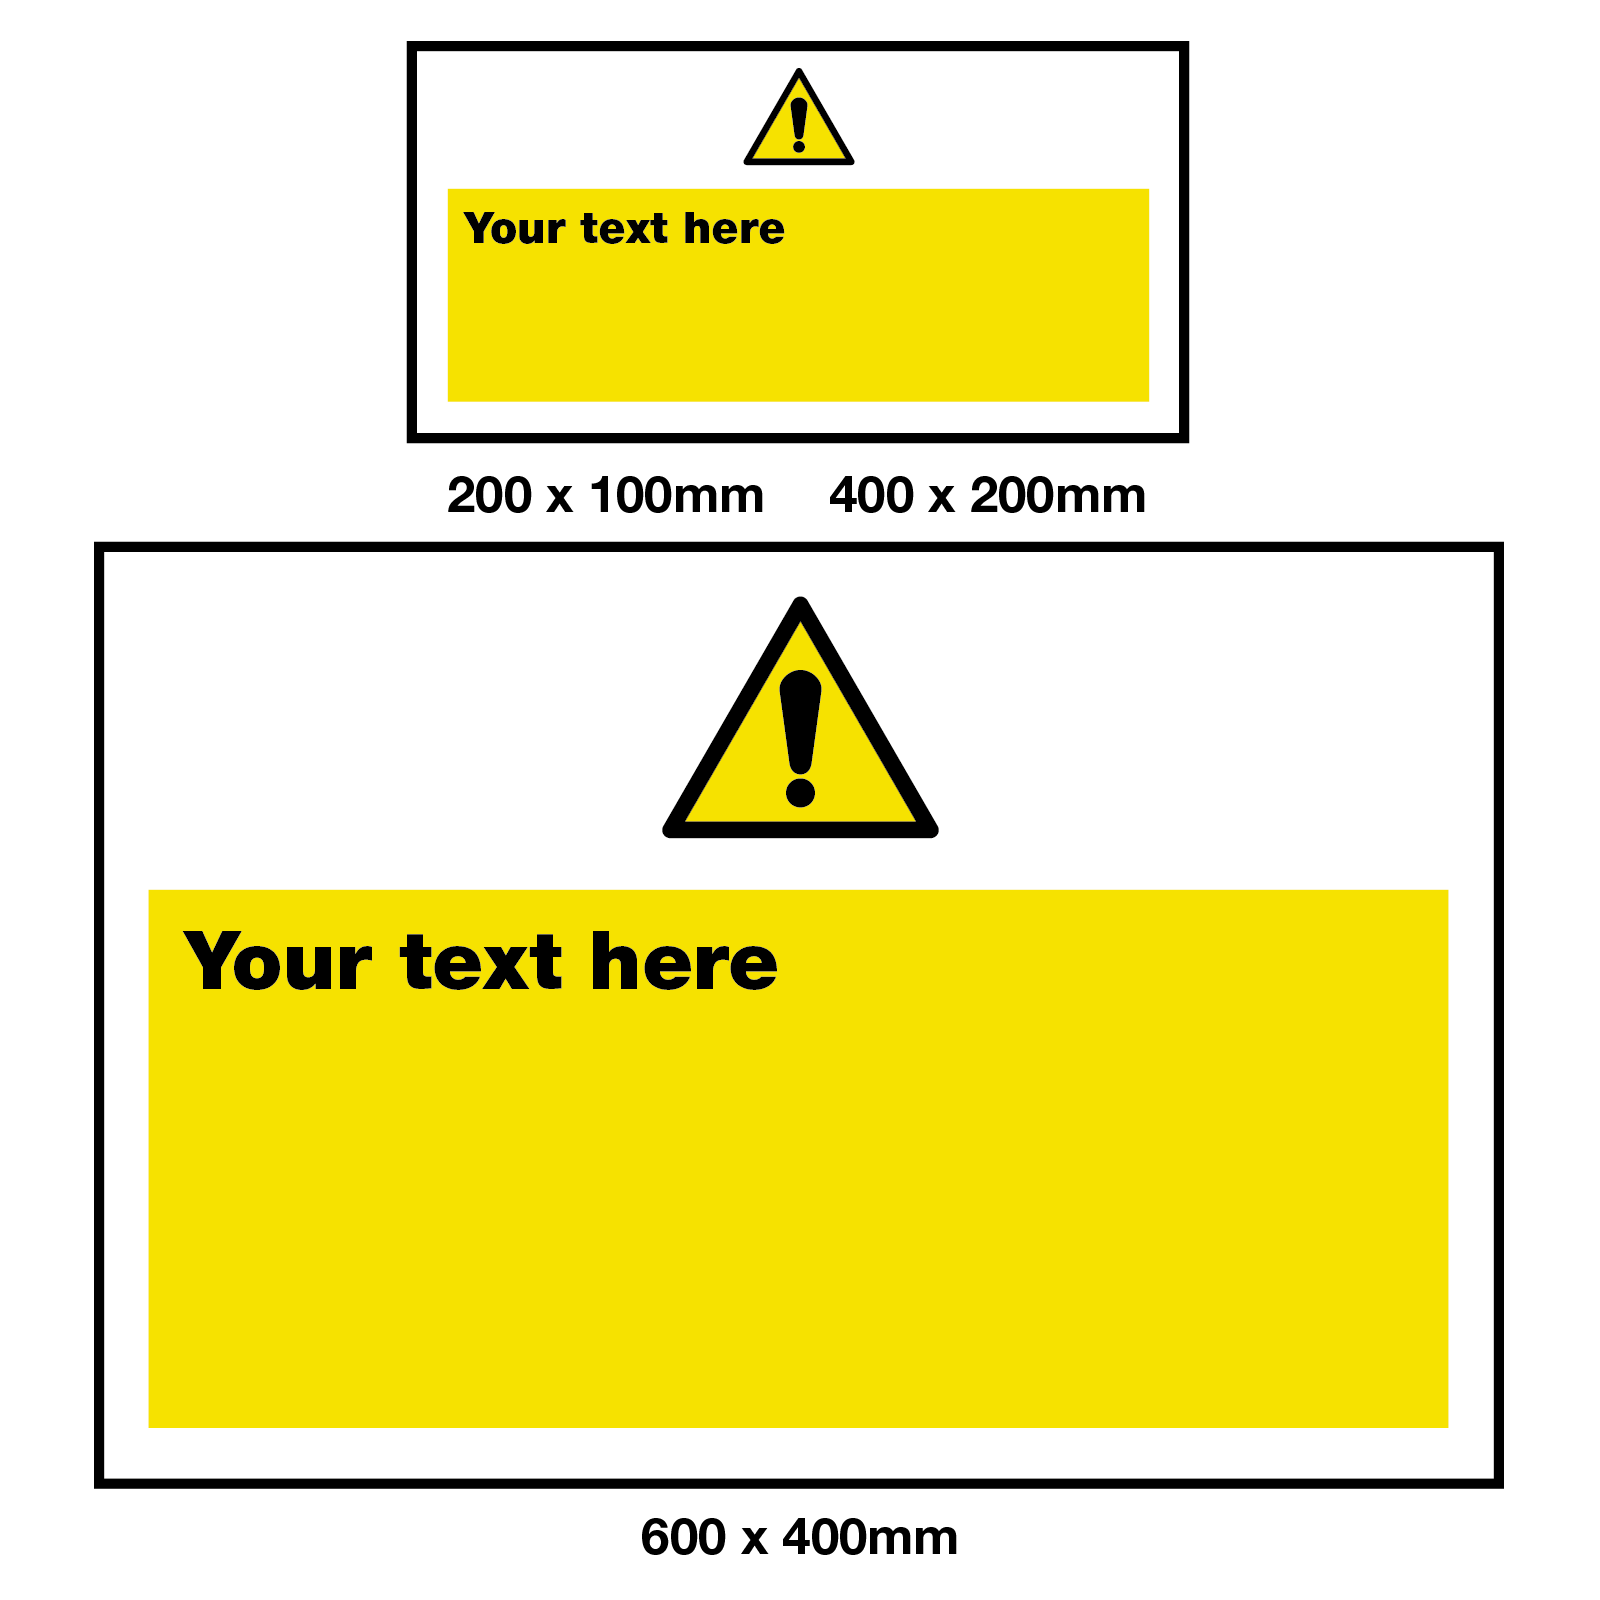 Create Your Own Warning Safety Sign Style 1